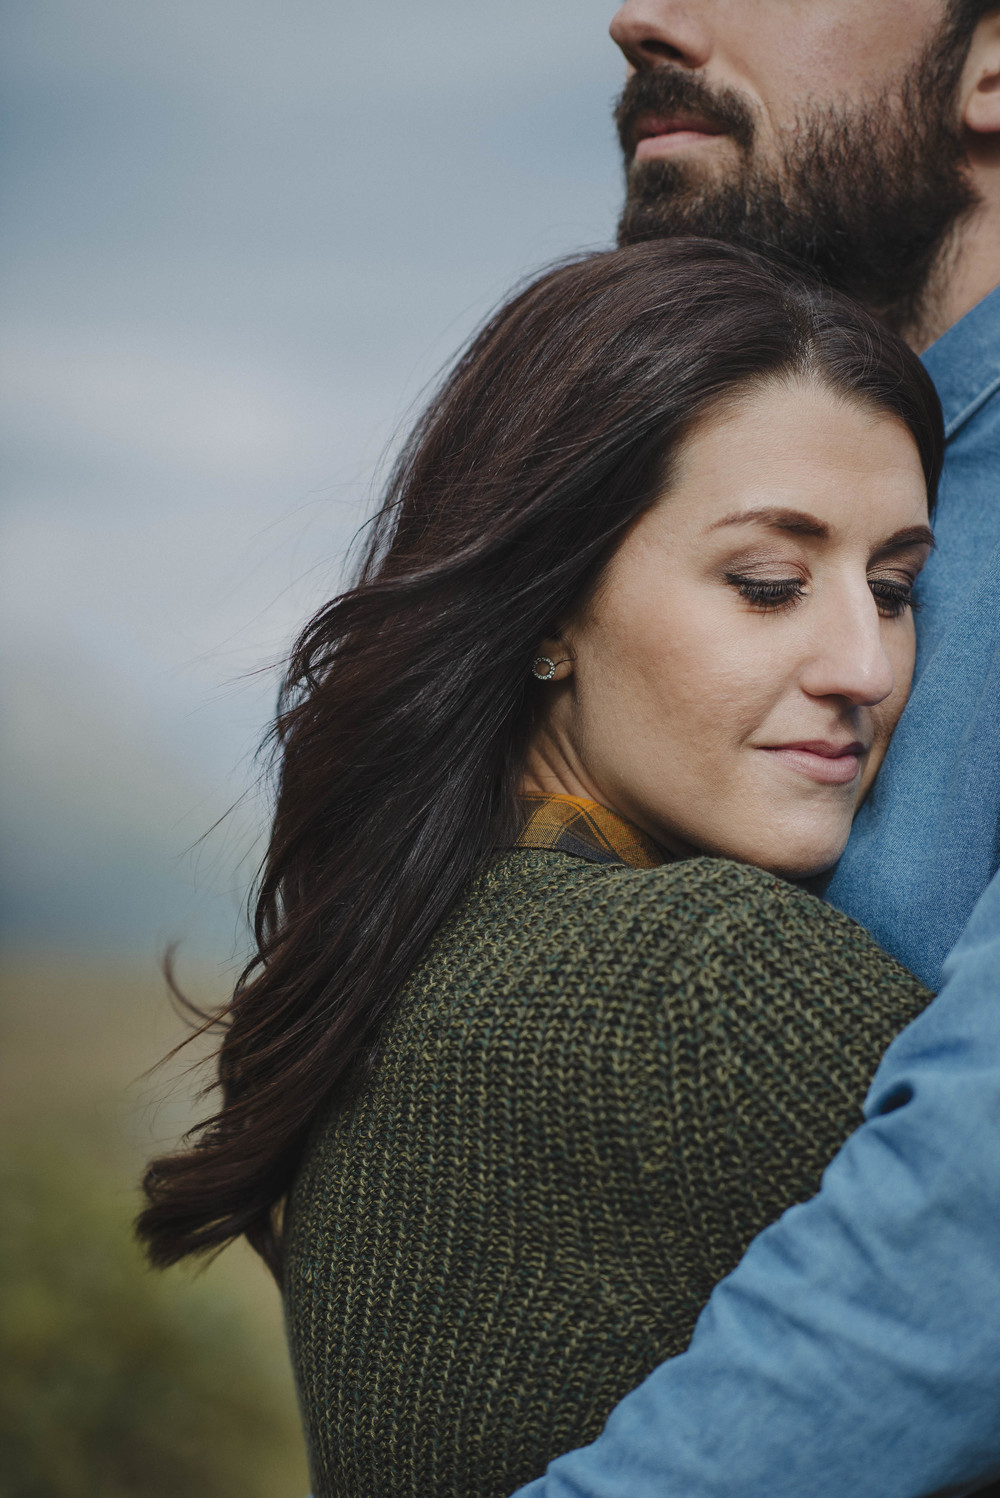 Glencoe Engagement Photography 17.jpg